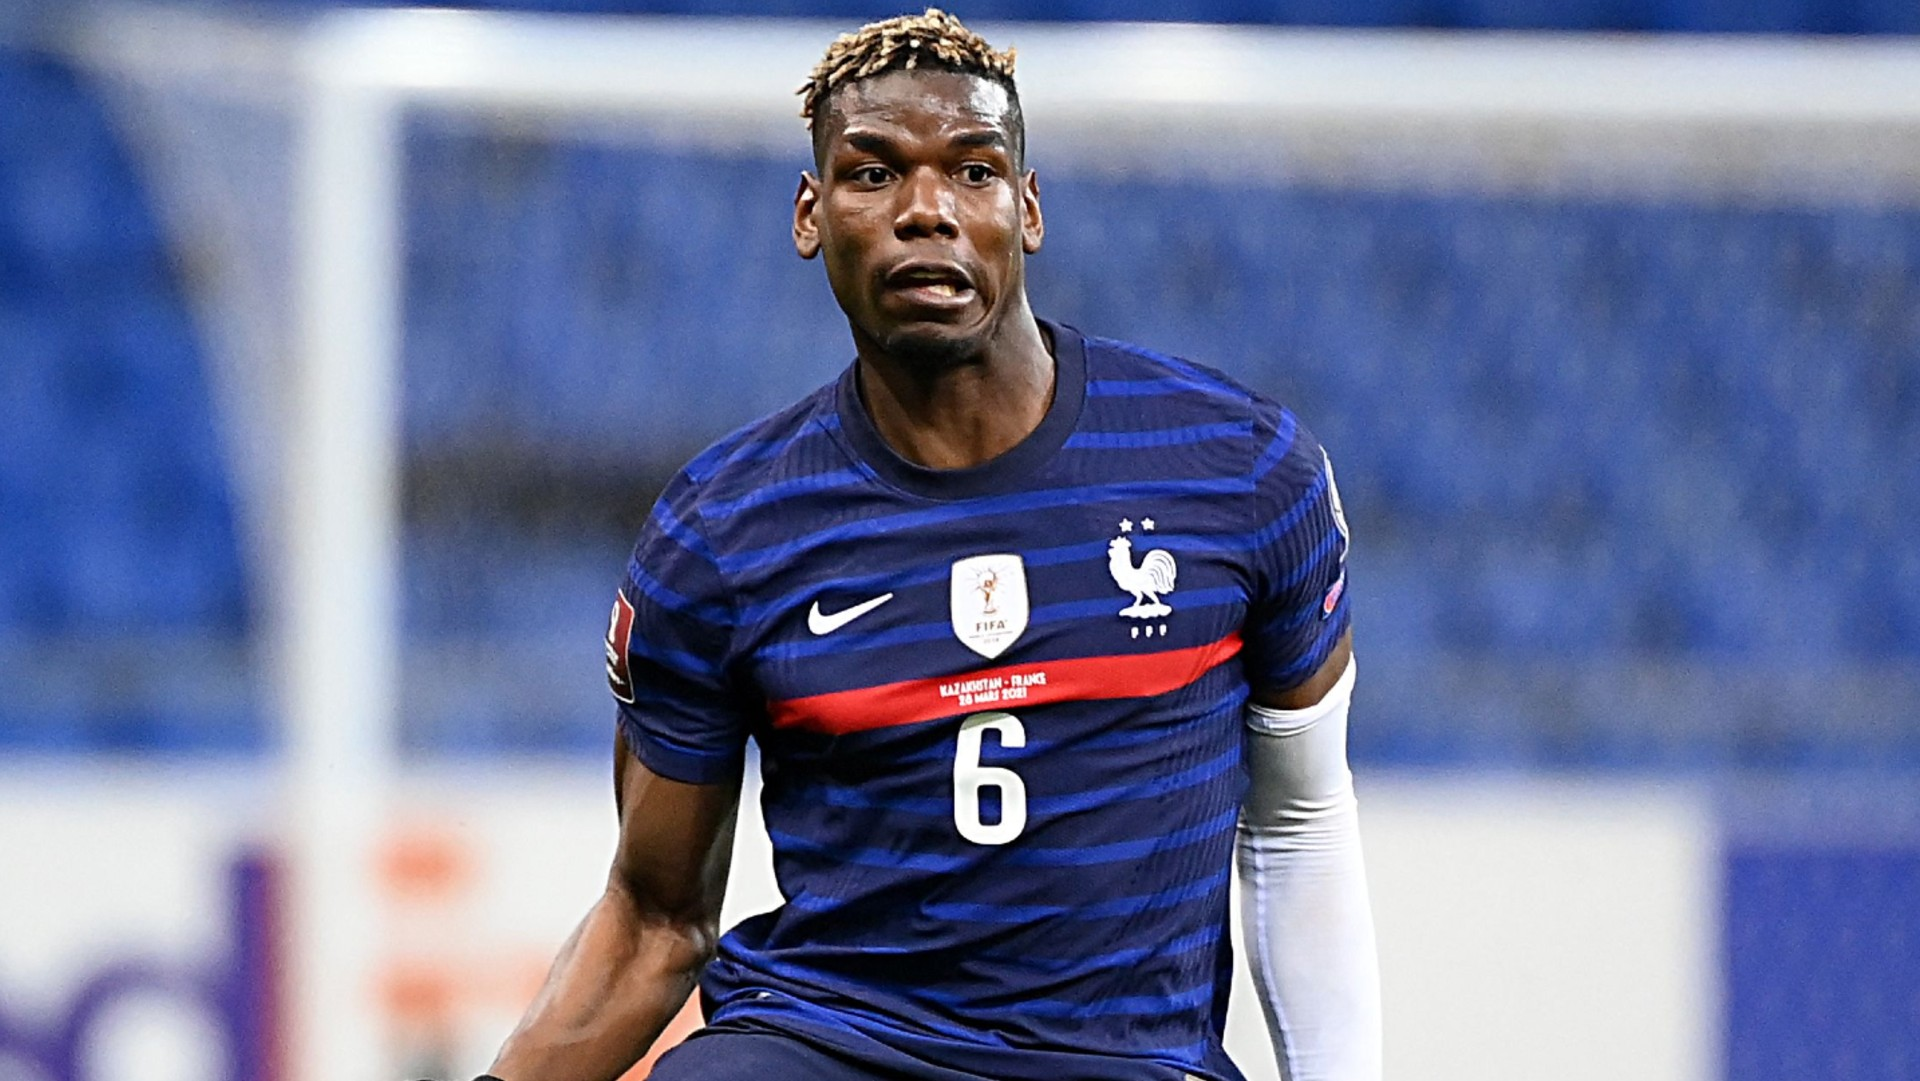 'Sometimes football can be cruel…but also beautiful' - Pogba vows France will 'come back stronger' after early Euro 2020 exit